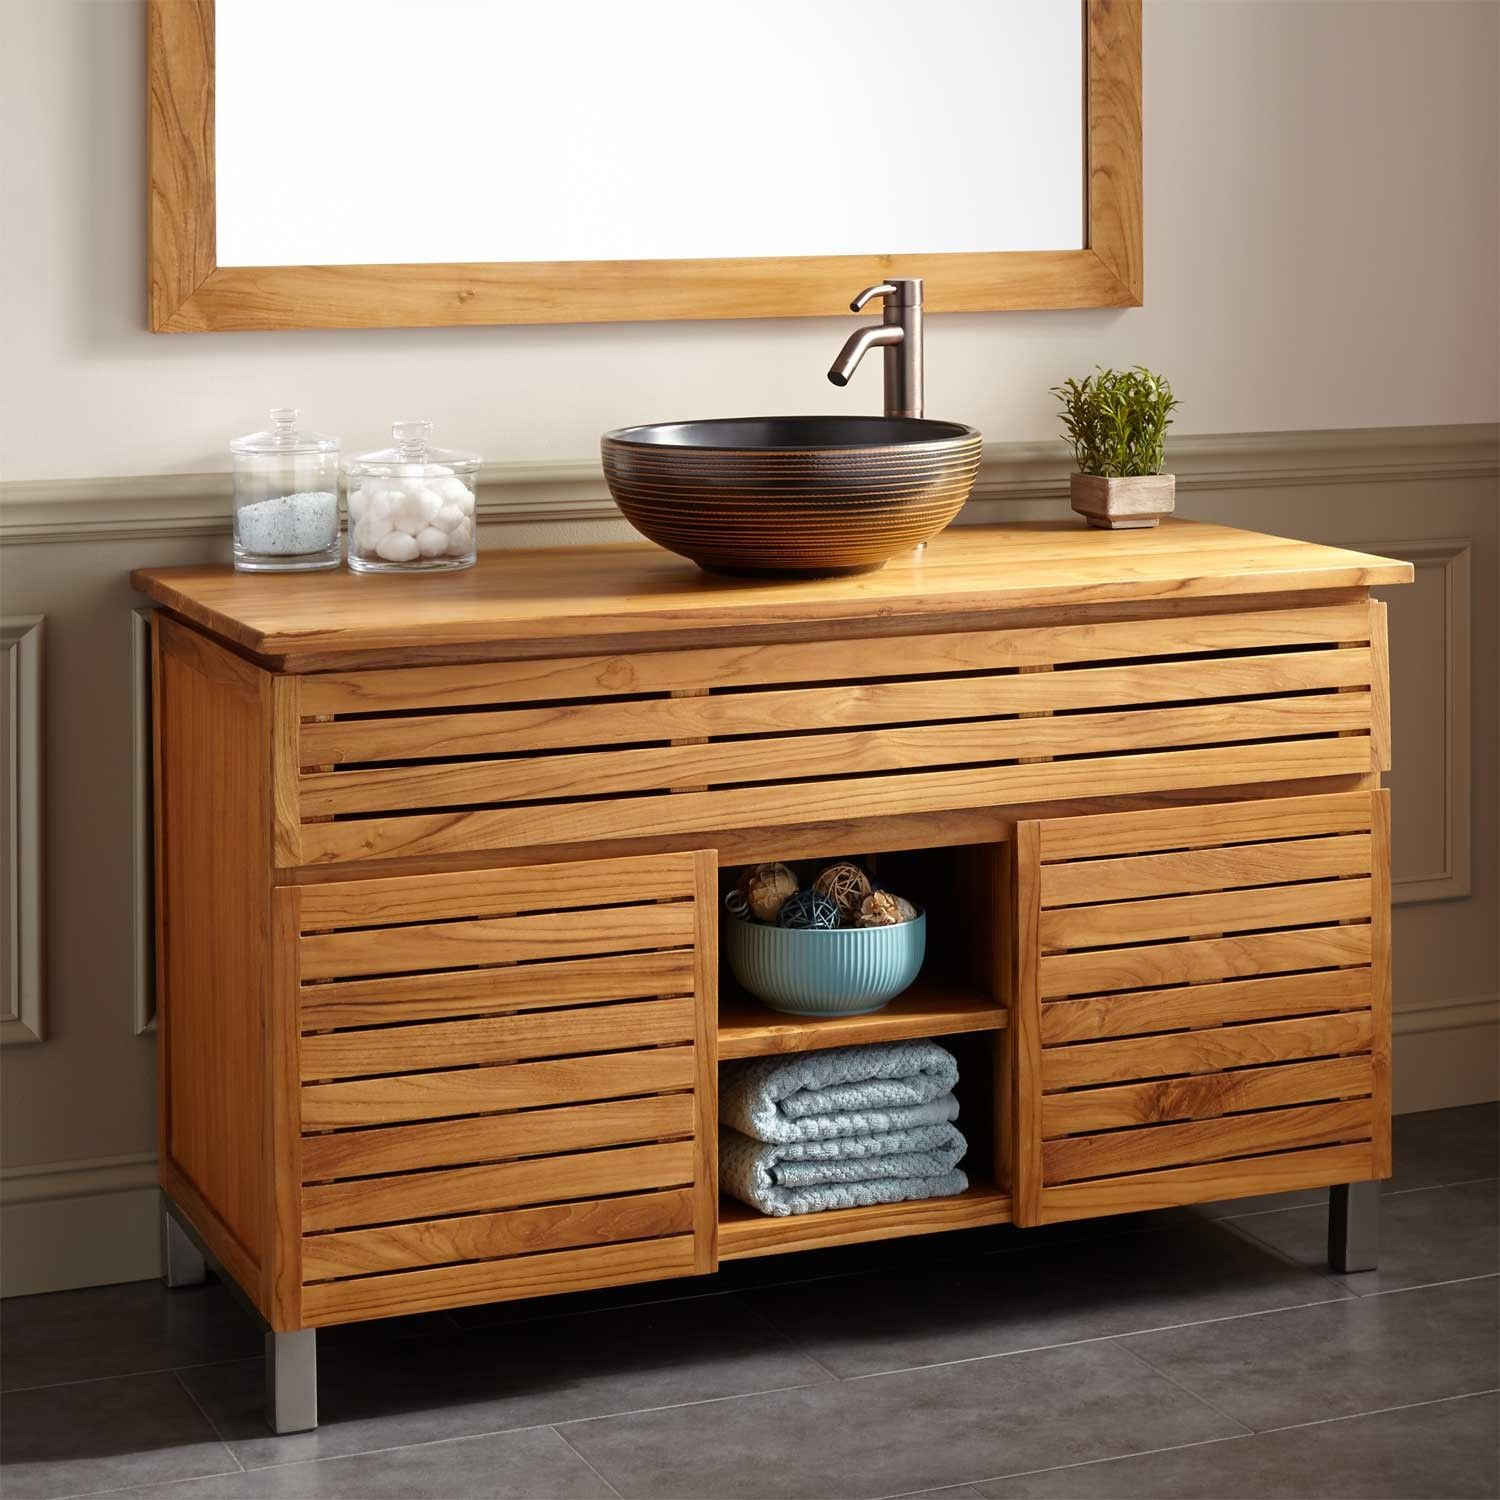 The Awesome Web  Caldwell Teak Vessel Sink Vanity Bathroom Vanities Bathroom